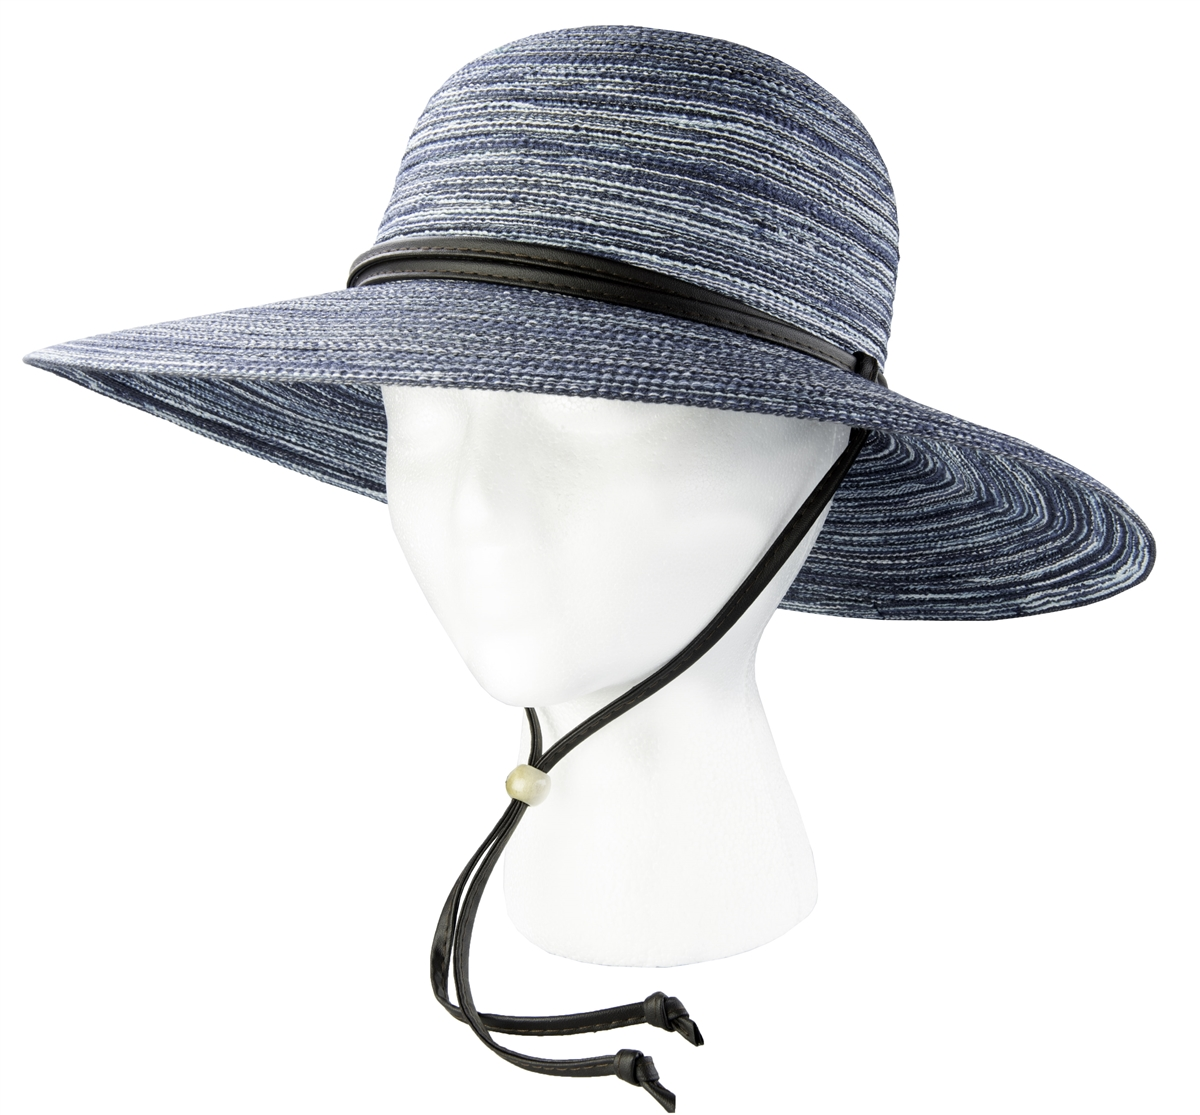 a655086a1c17aa Sloggers Women's Braided Hat with Win Lanyard Navy UPF 50+ Maximum ...